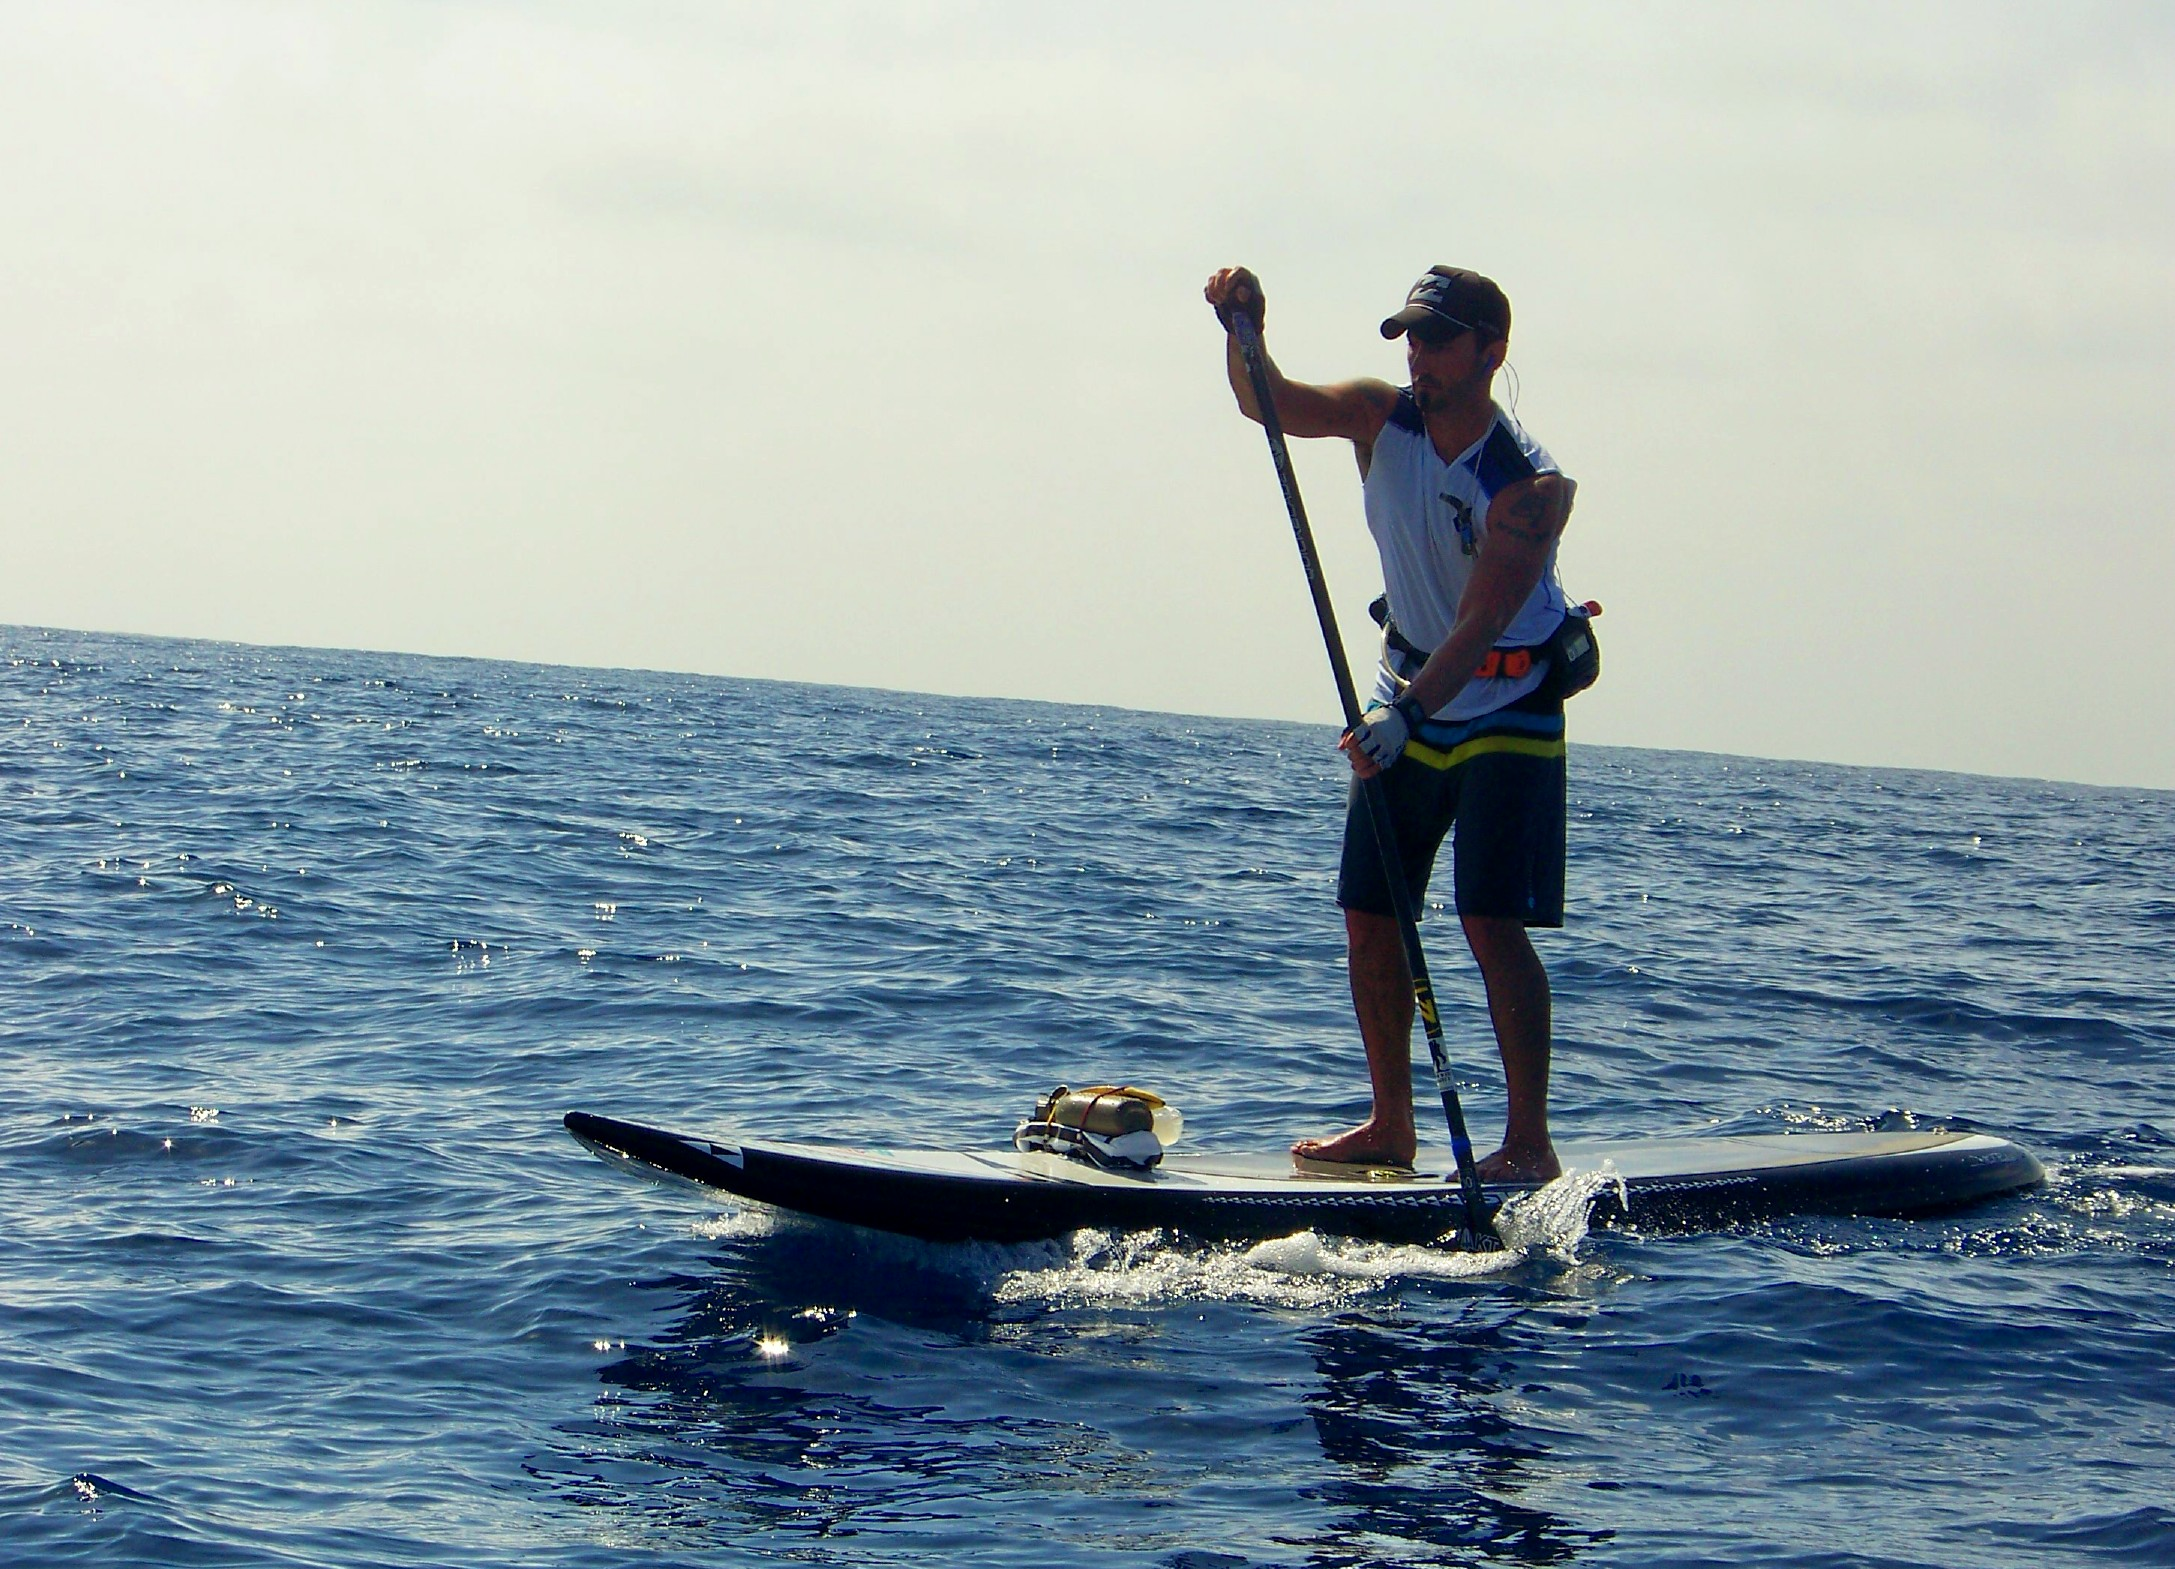 Veteran to set off on 1,400 mile SUP trip, May 24.